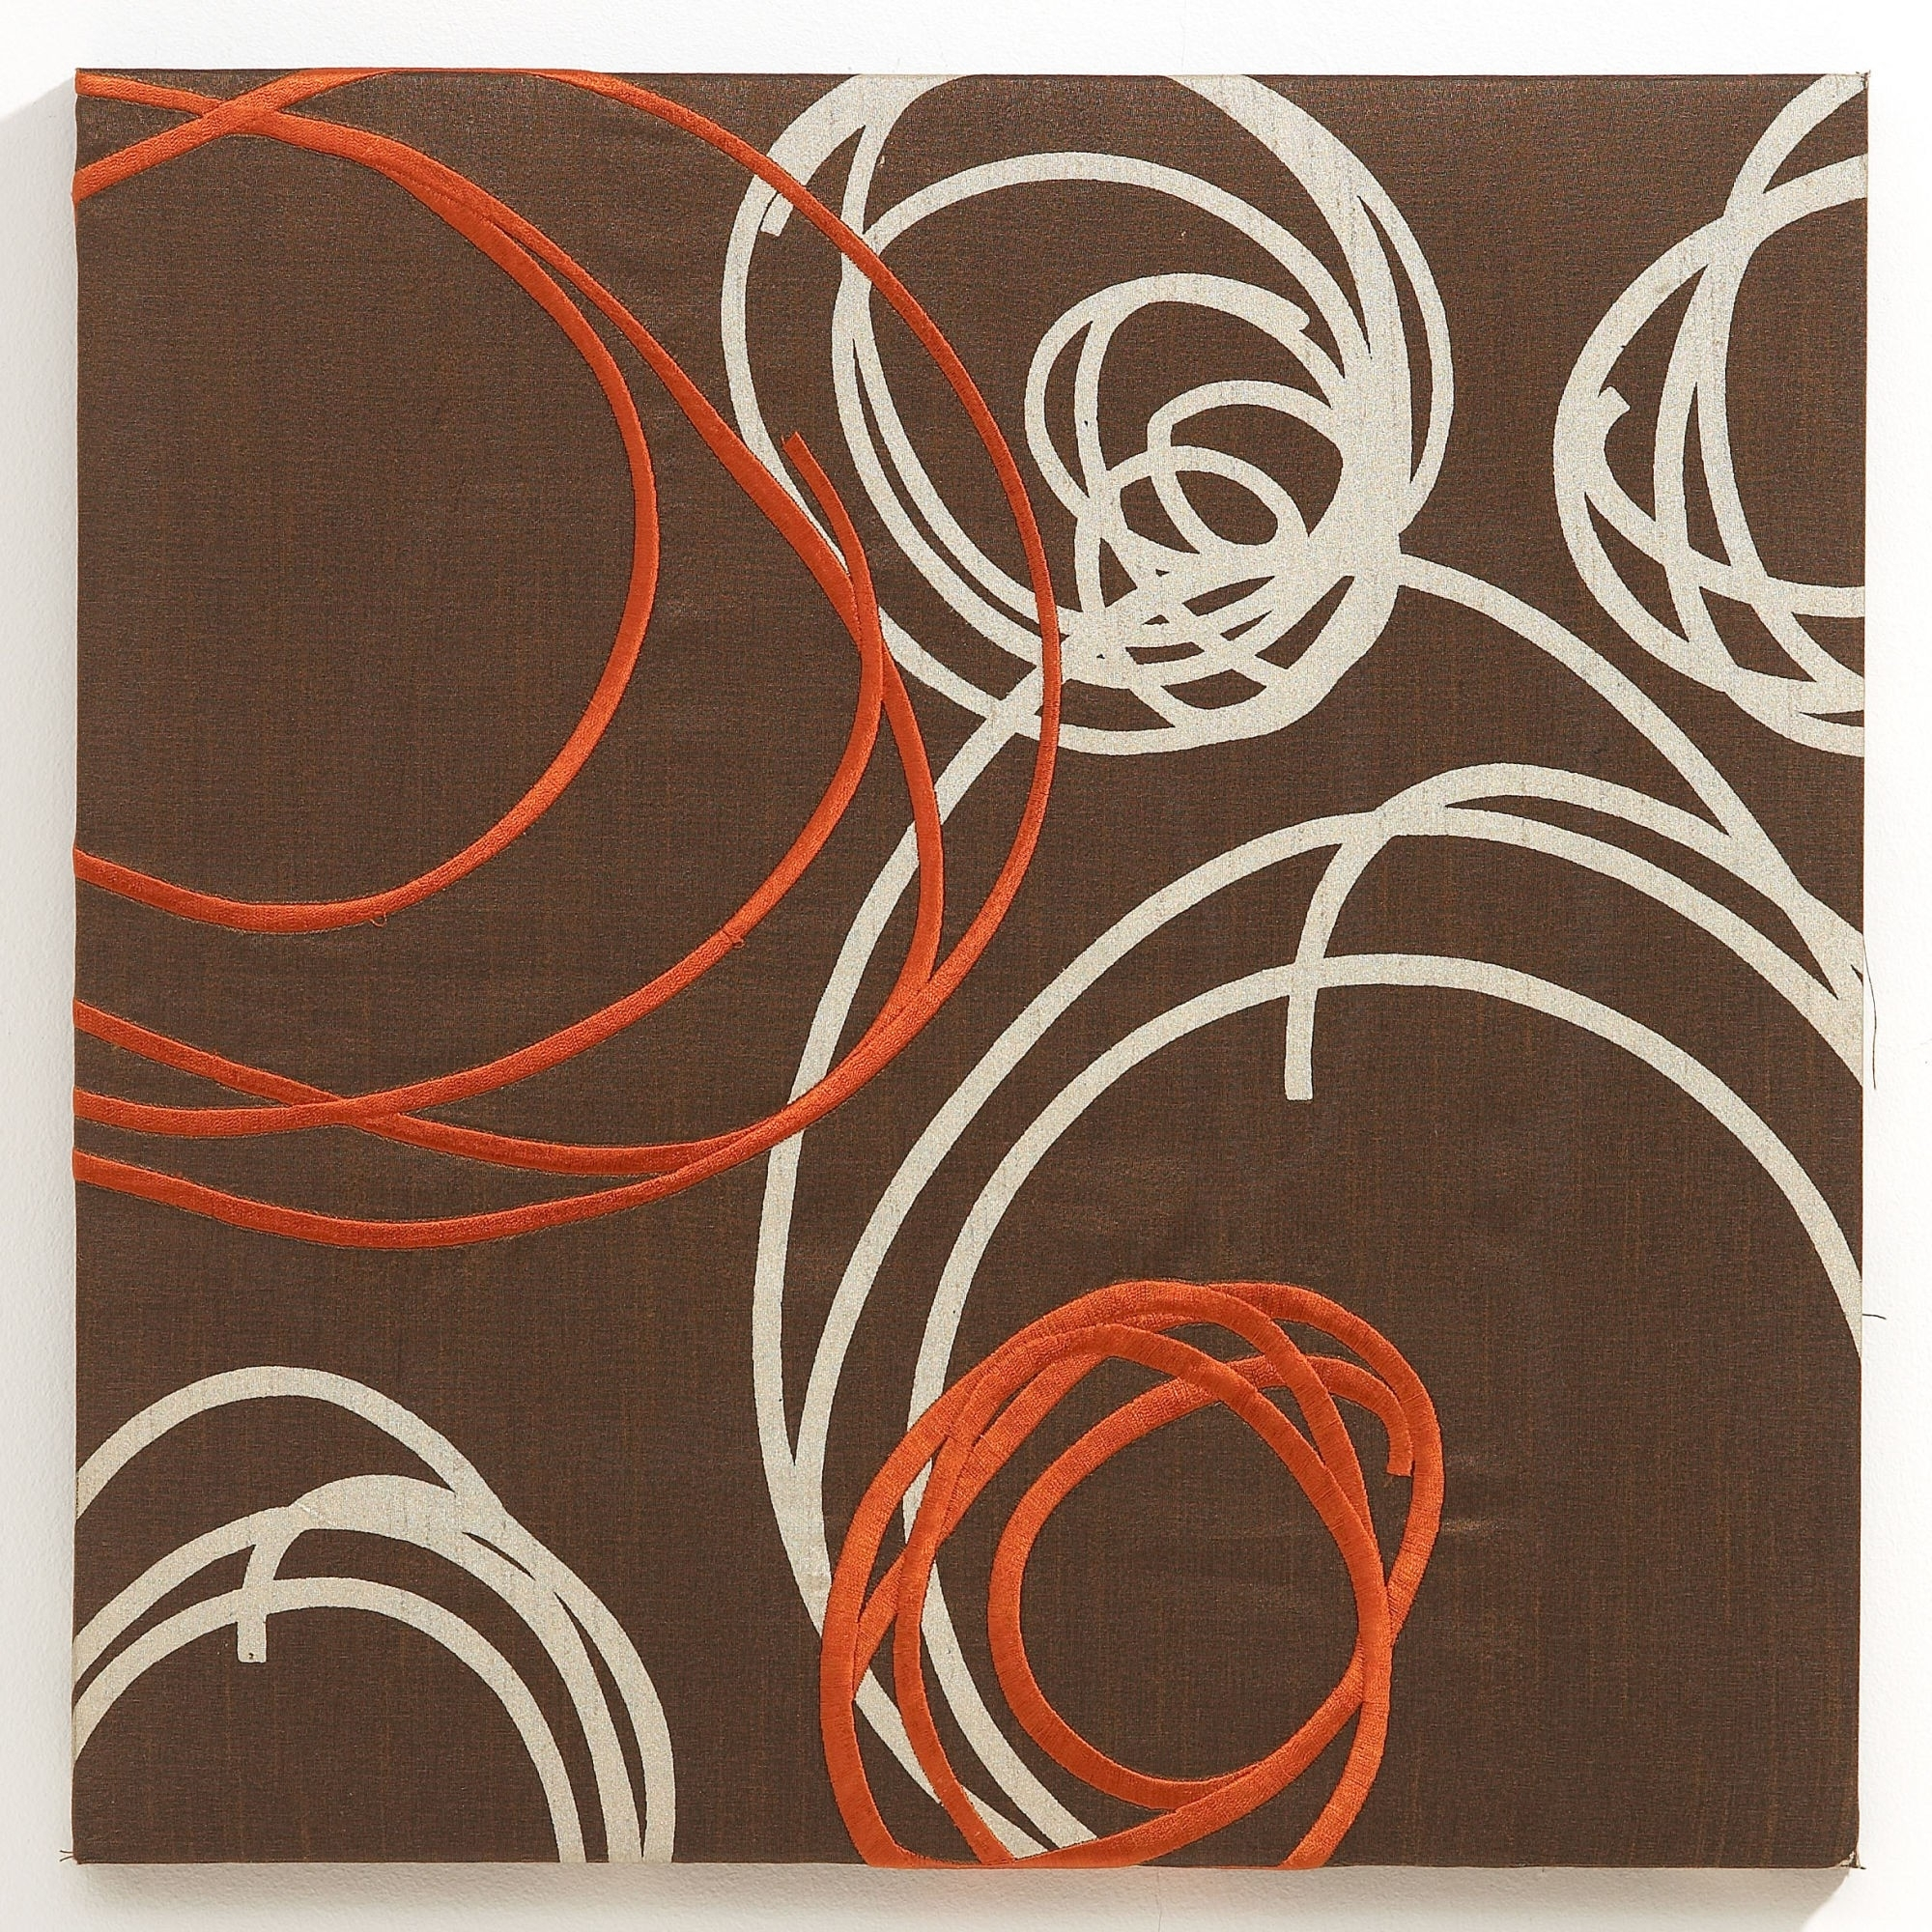 Graham & Brown Wall Art Regarding Latest Wall Art Designs: Orange Wall Art Graham Amp Brown Orange Silk (Gallery 7 of 15)